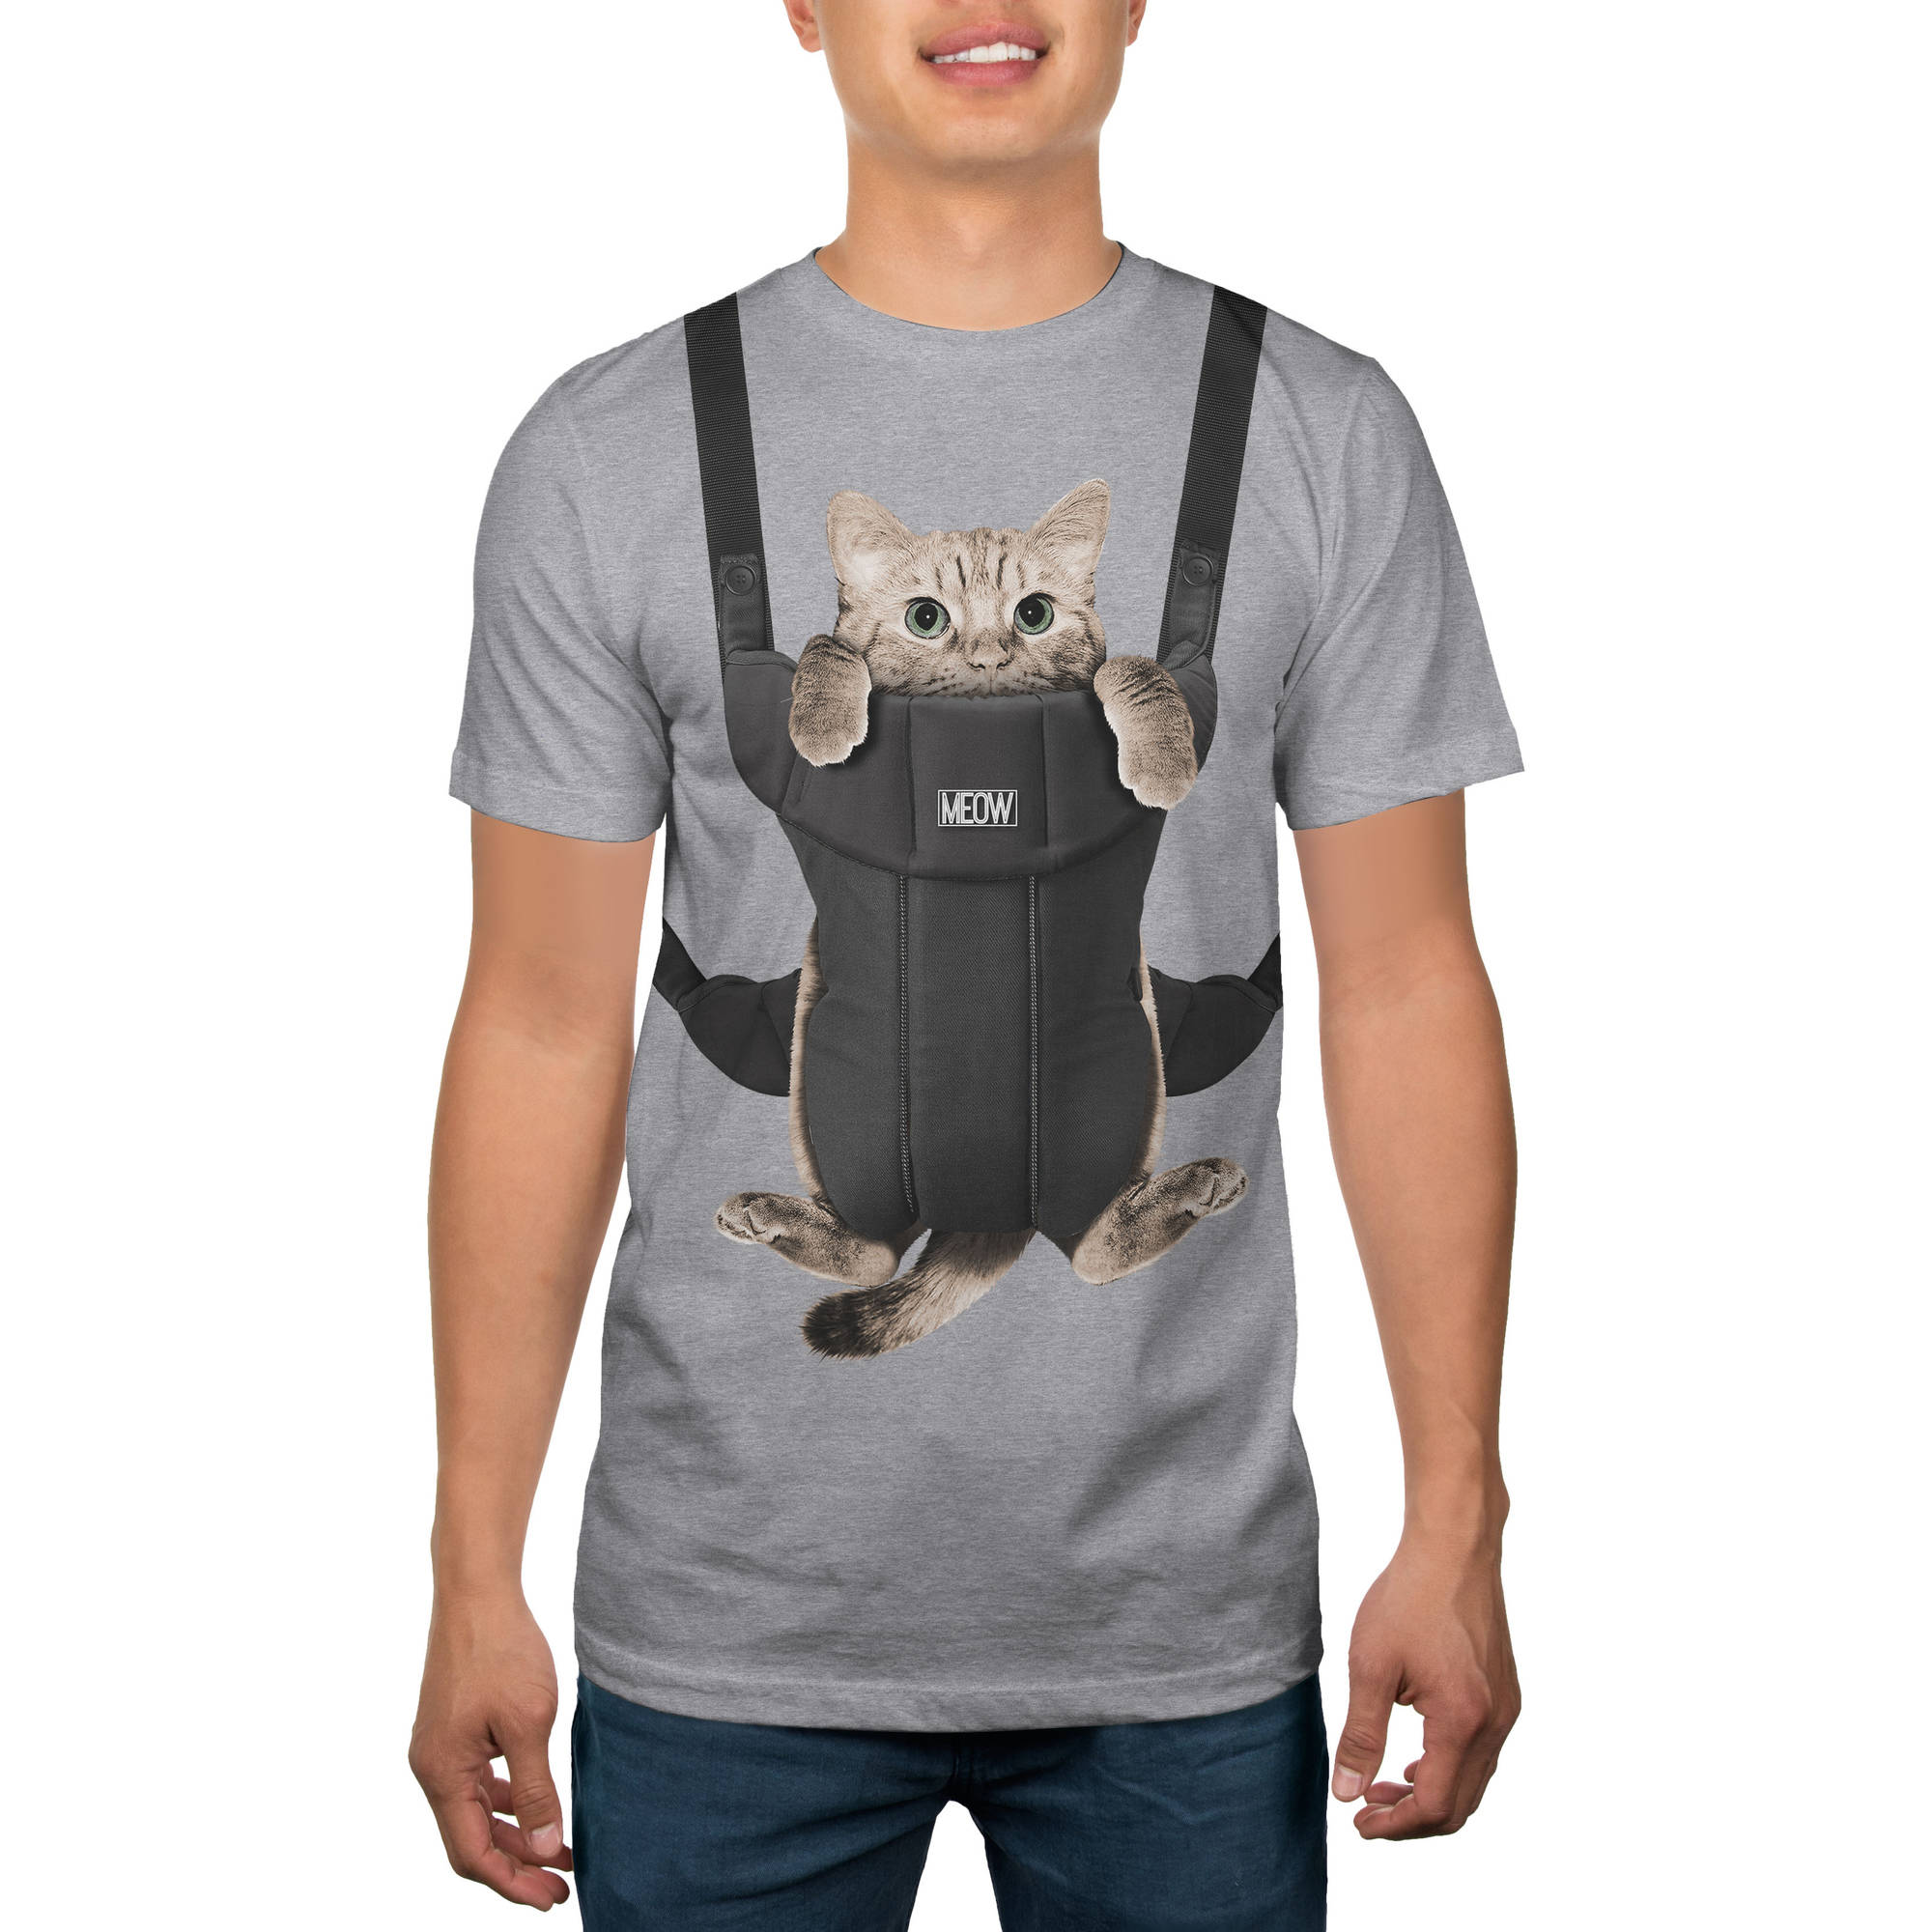 Cat in Carrier Big Men's Humor Graphic Tee